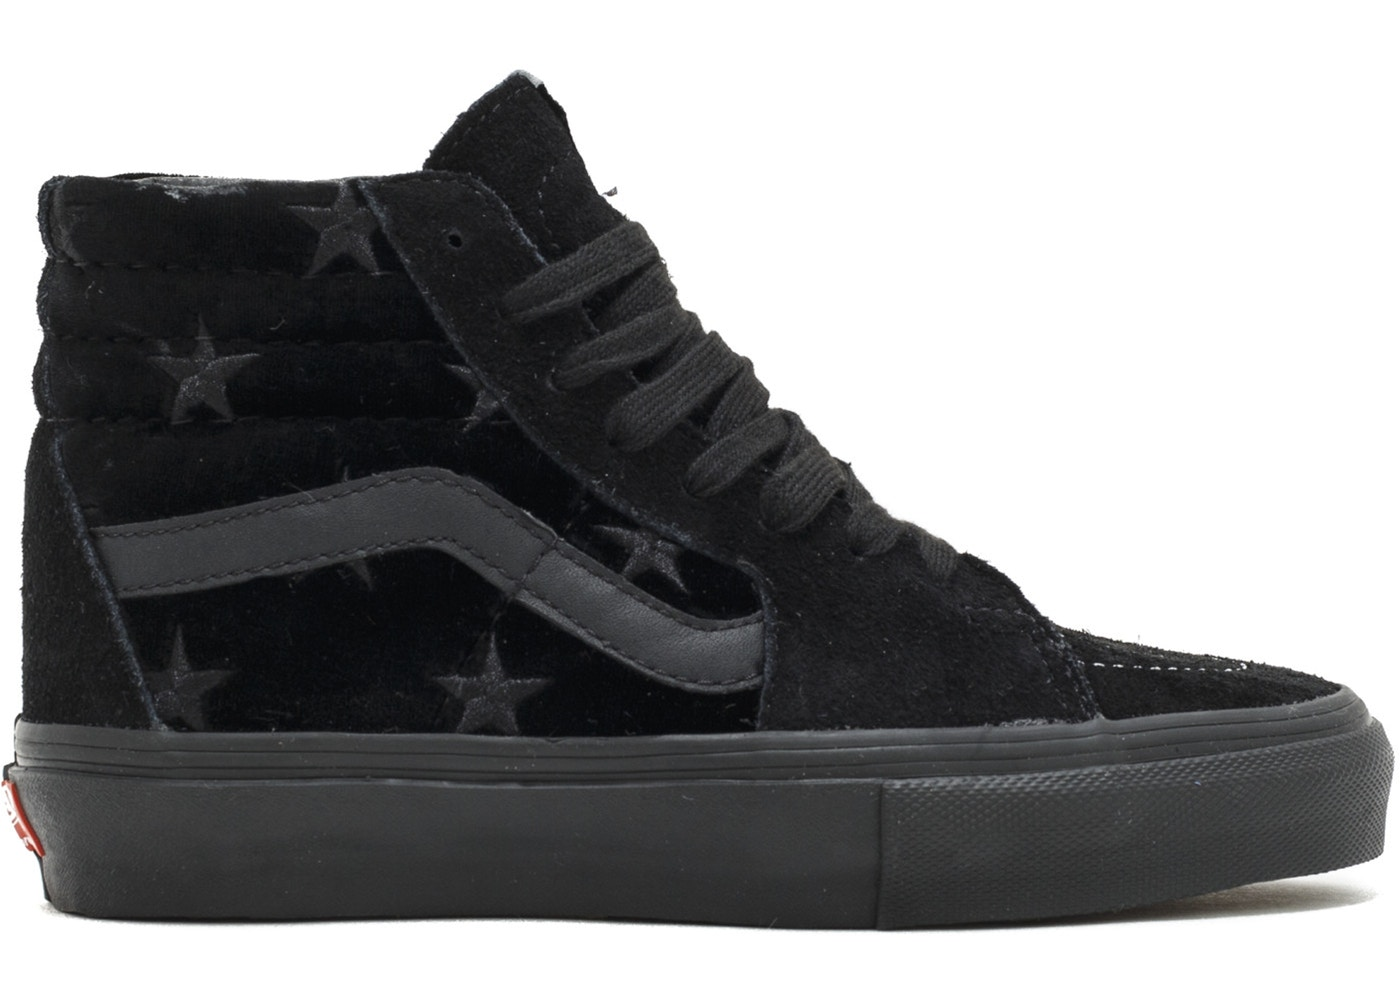 a478cb8f8886 Sell. or Ask. Size  9.5. View All Bids. Vans Sk8-Hi Supreme Velvet Pack  Black